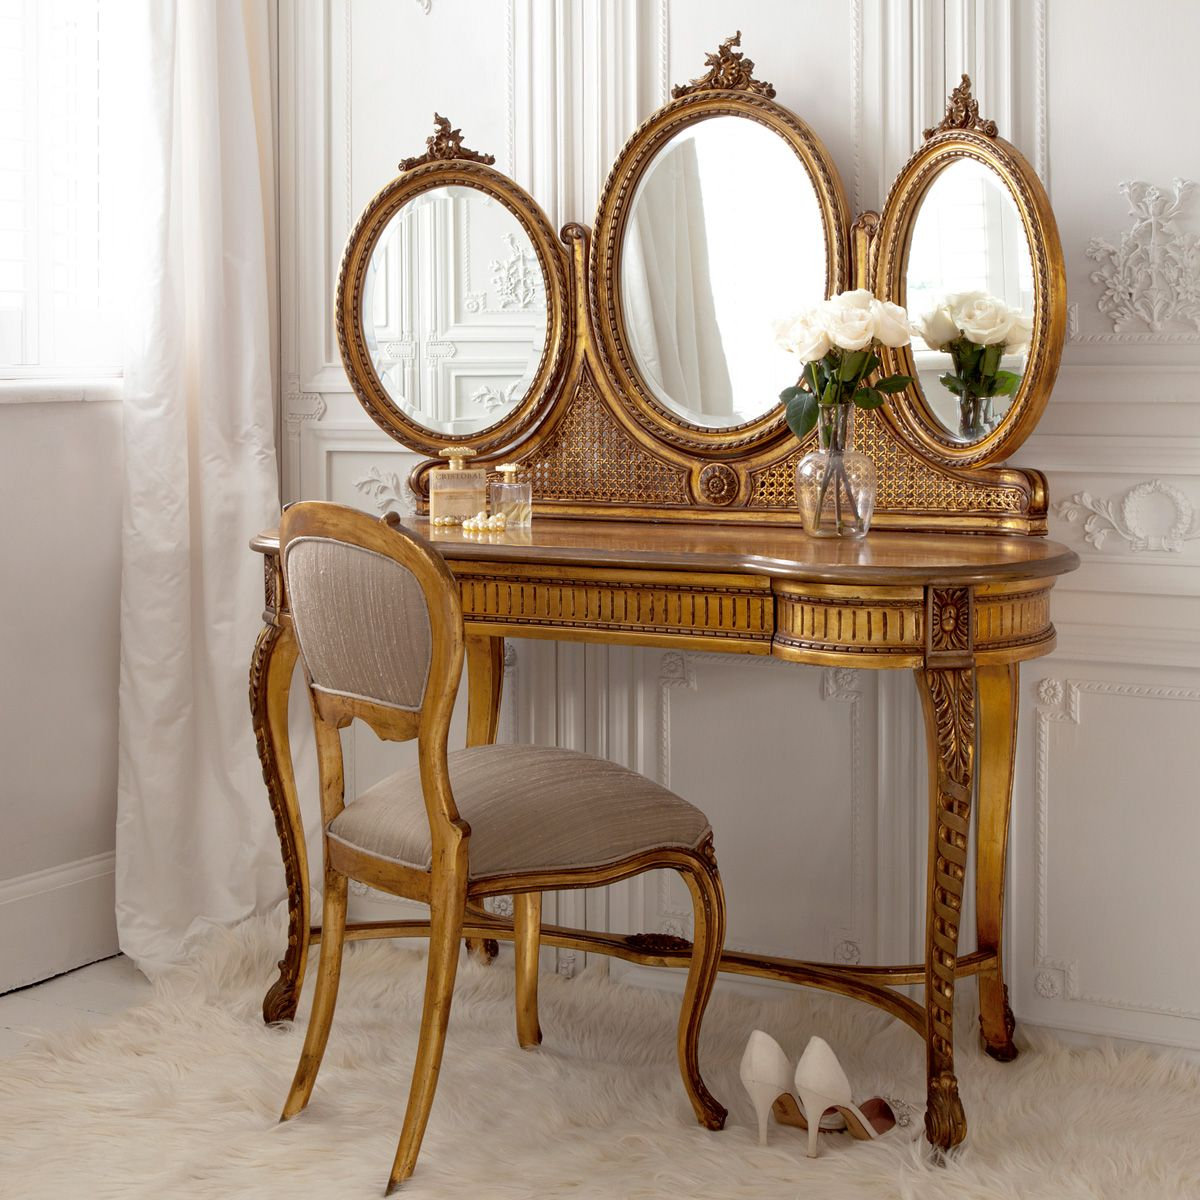 Versailles gold console table large image 4 by the french bedroom - Versailles Gold French Dressing Table By The French Bedroom Company